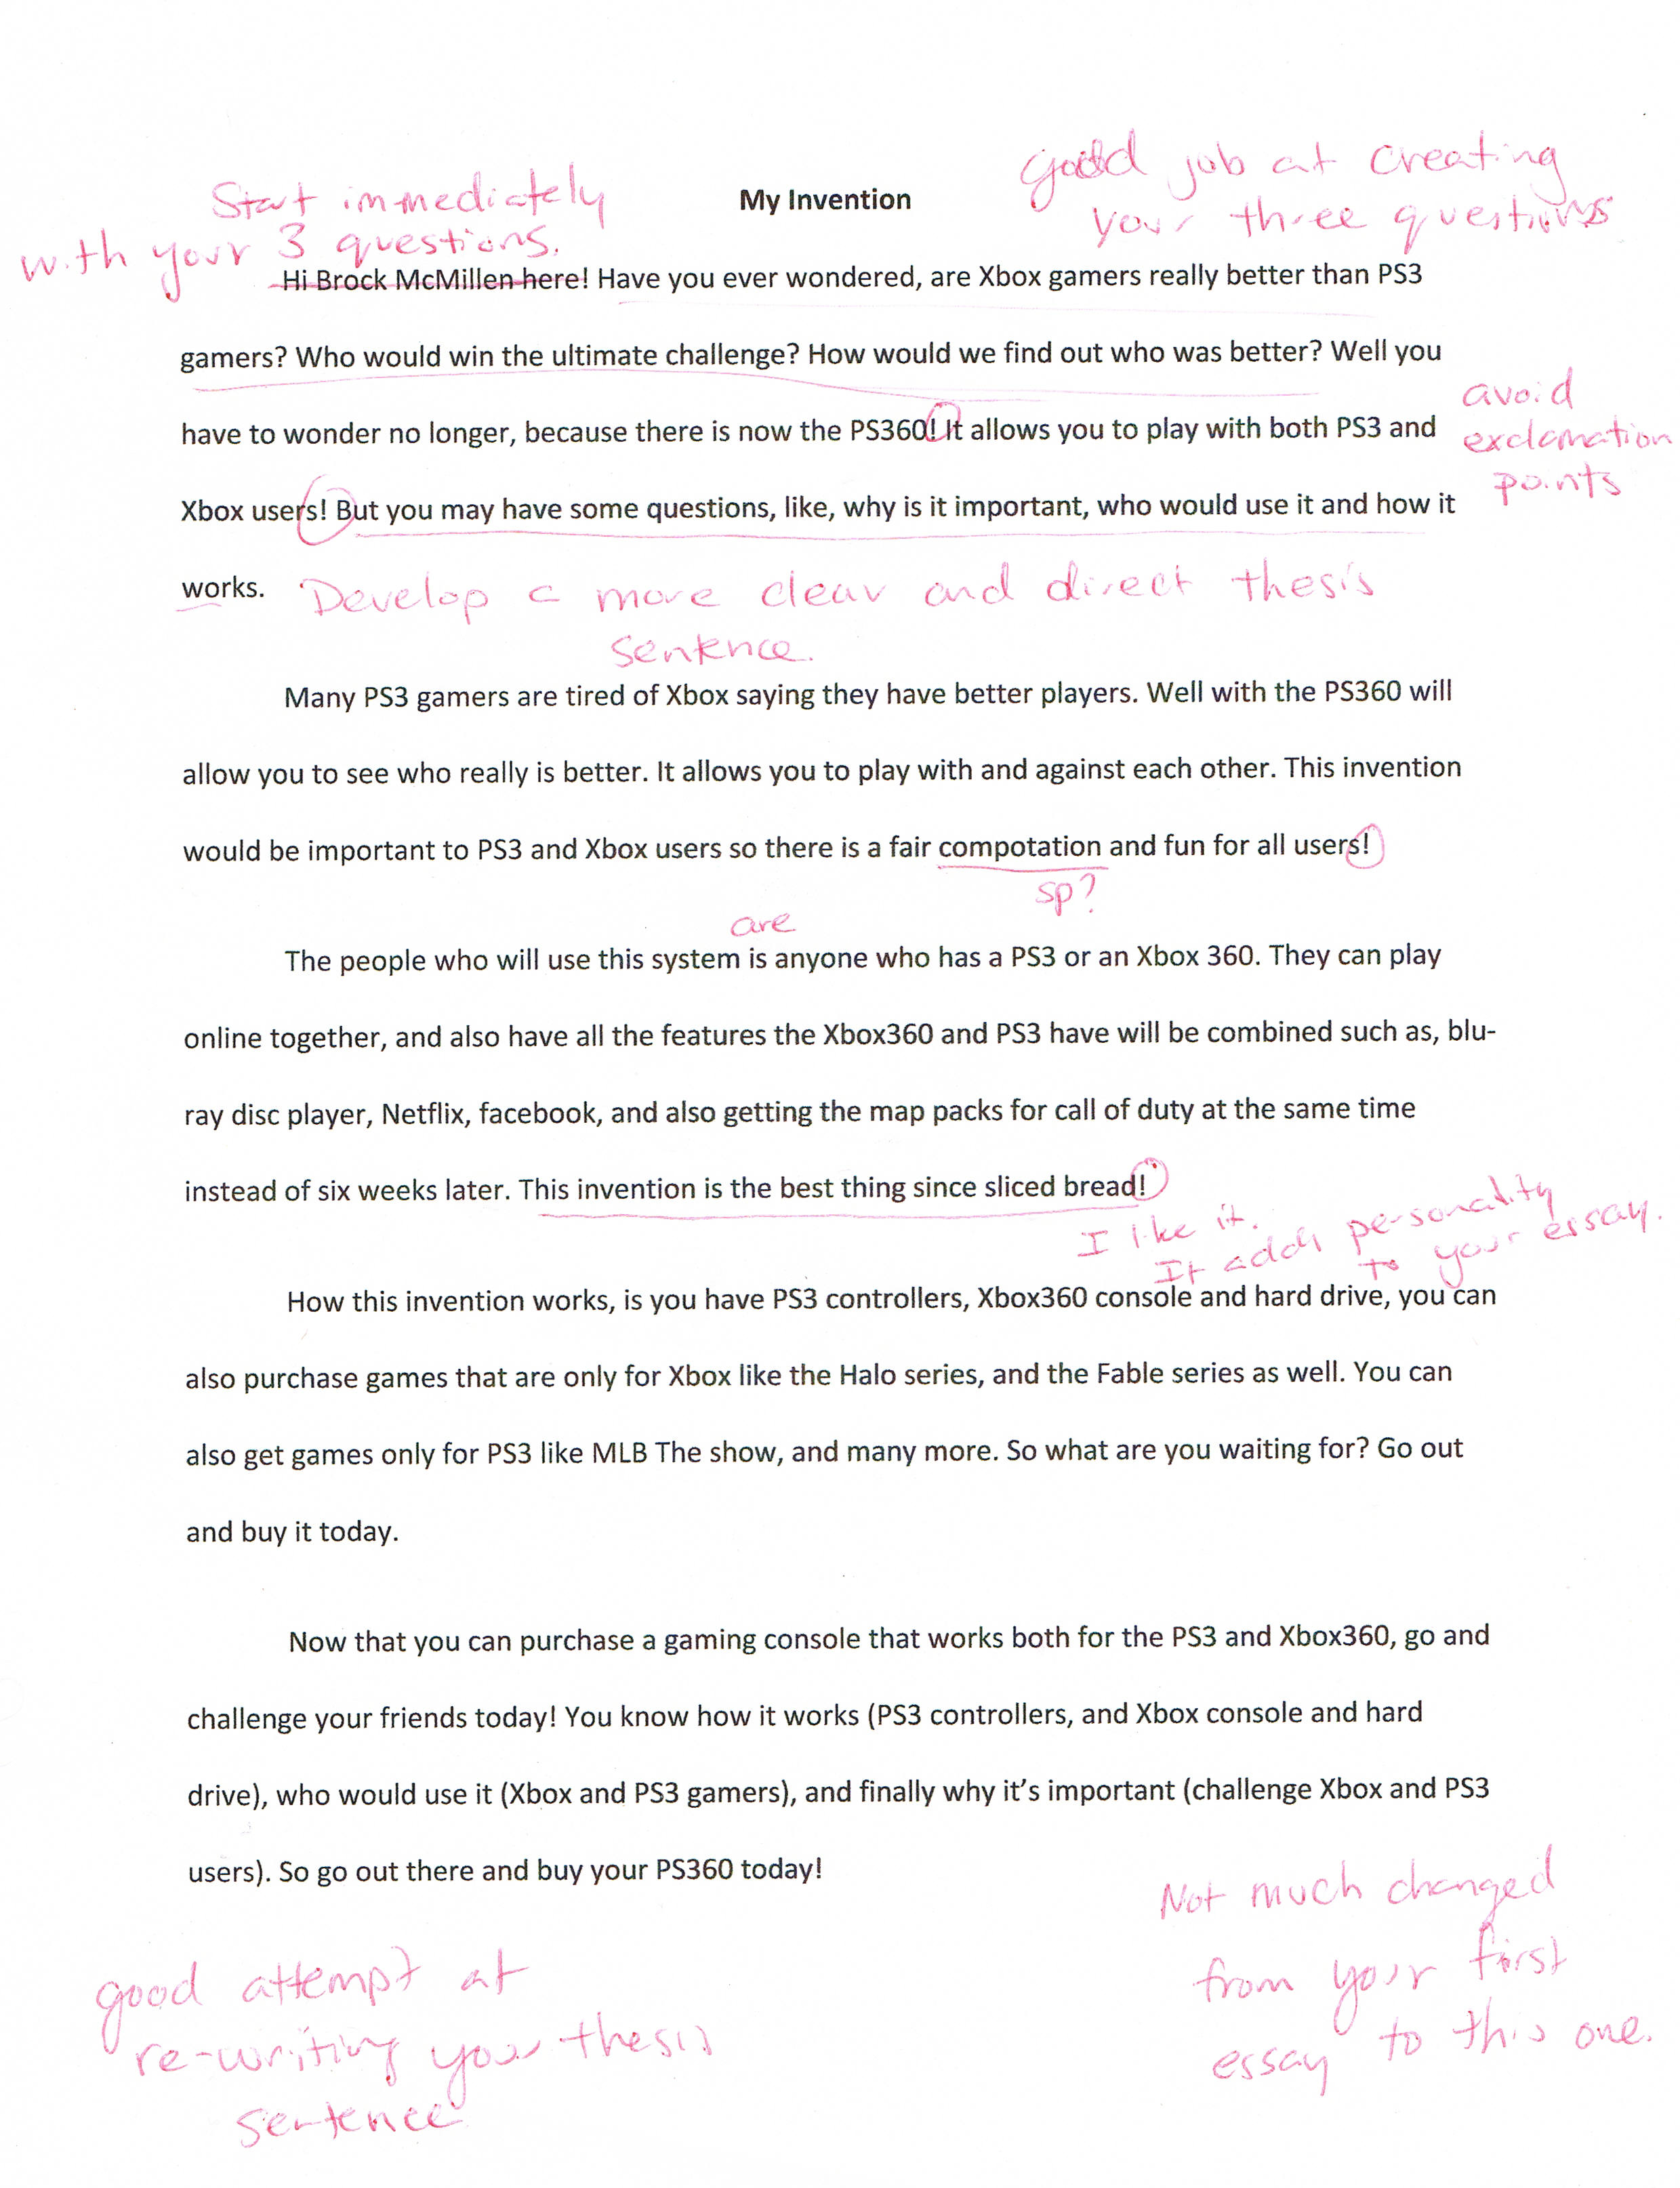 Conclusion for argumentative essay example